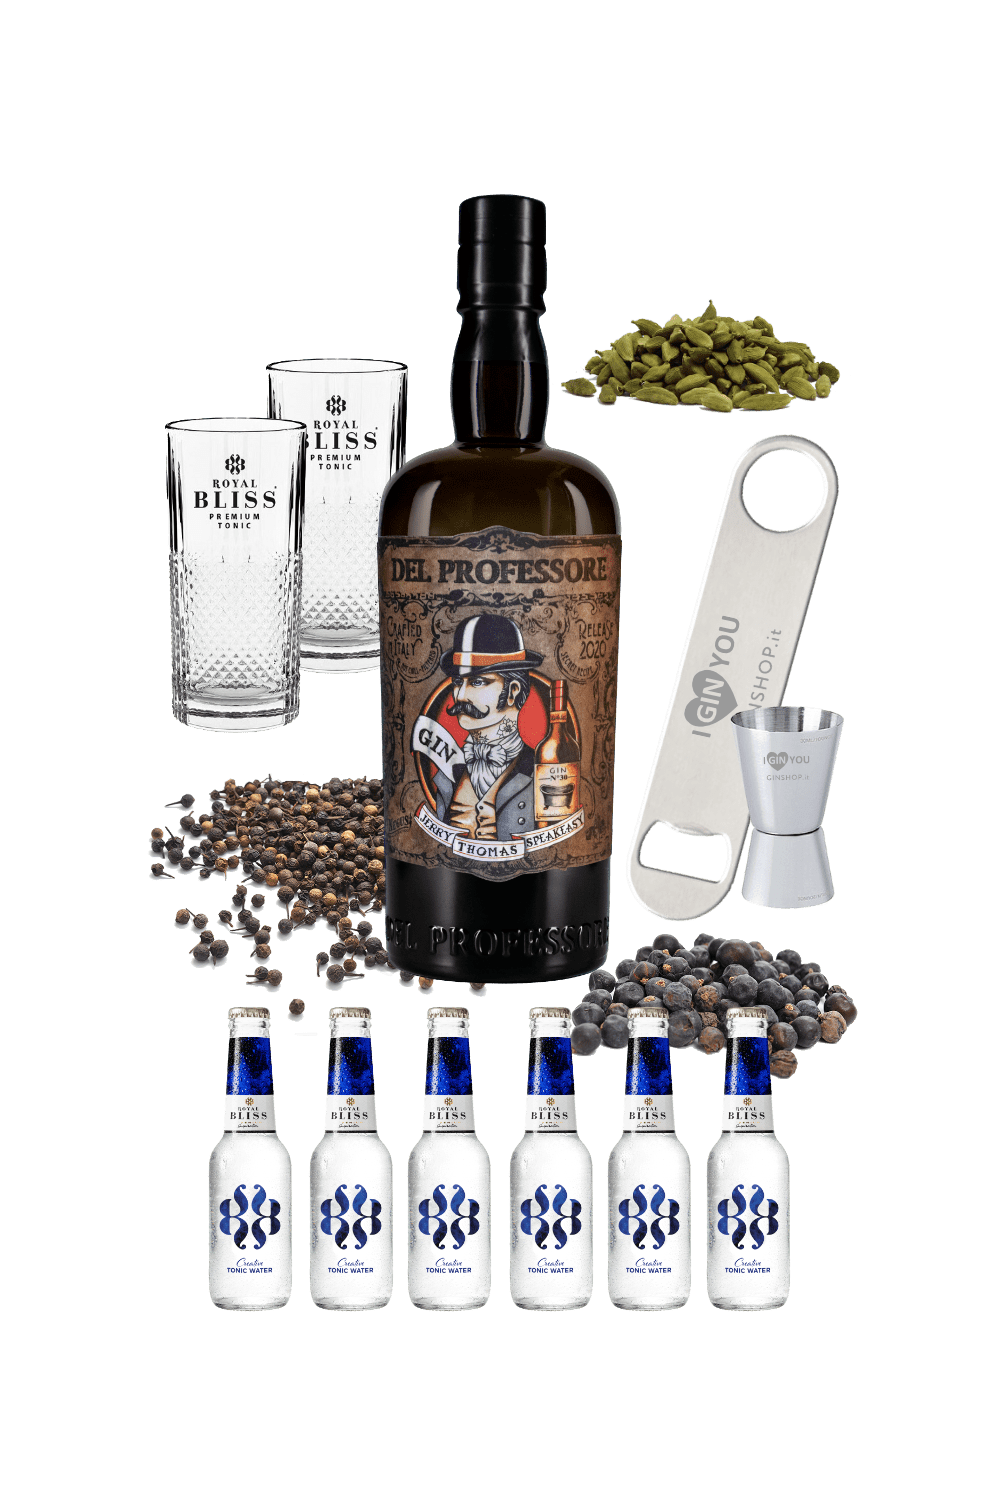 Mission Ginpossible – Gin Del Professore Monsieur